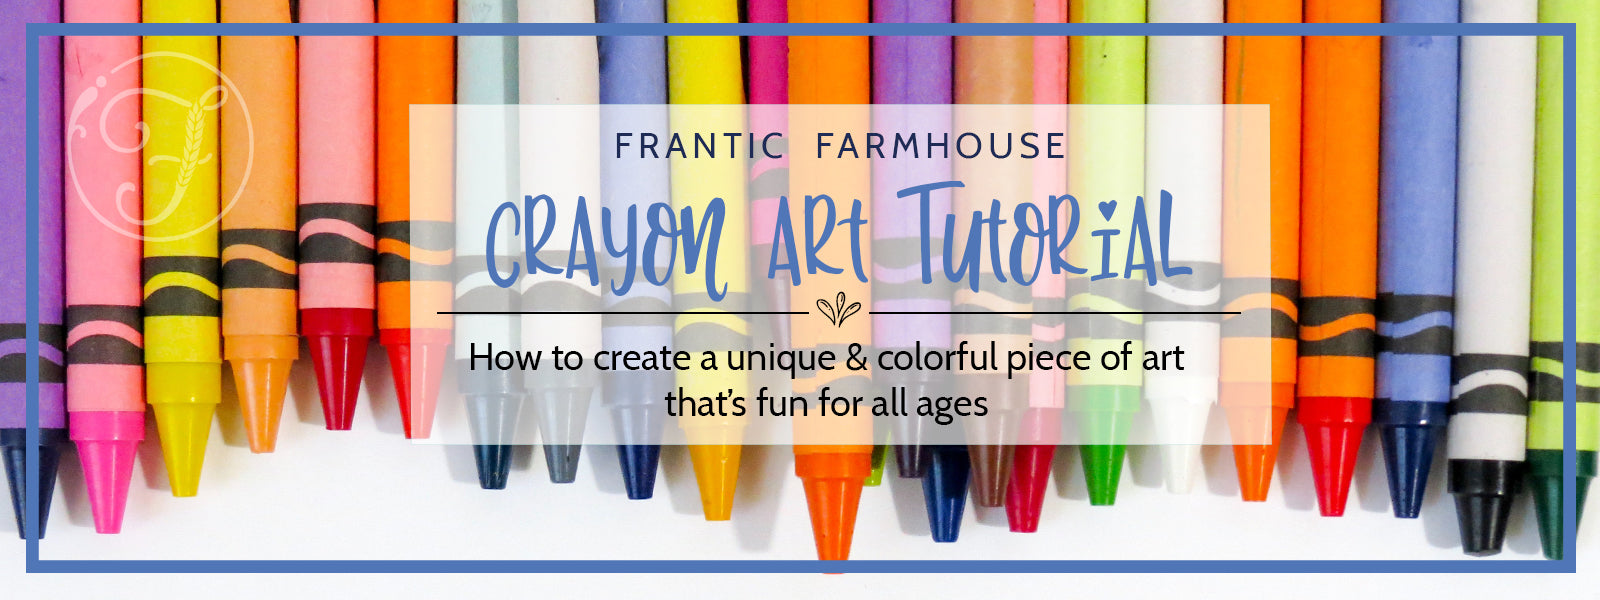 Crayon Art Tutorial